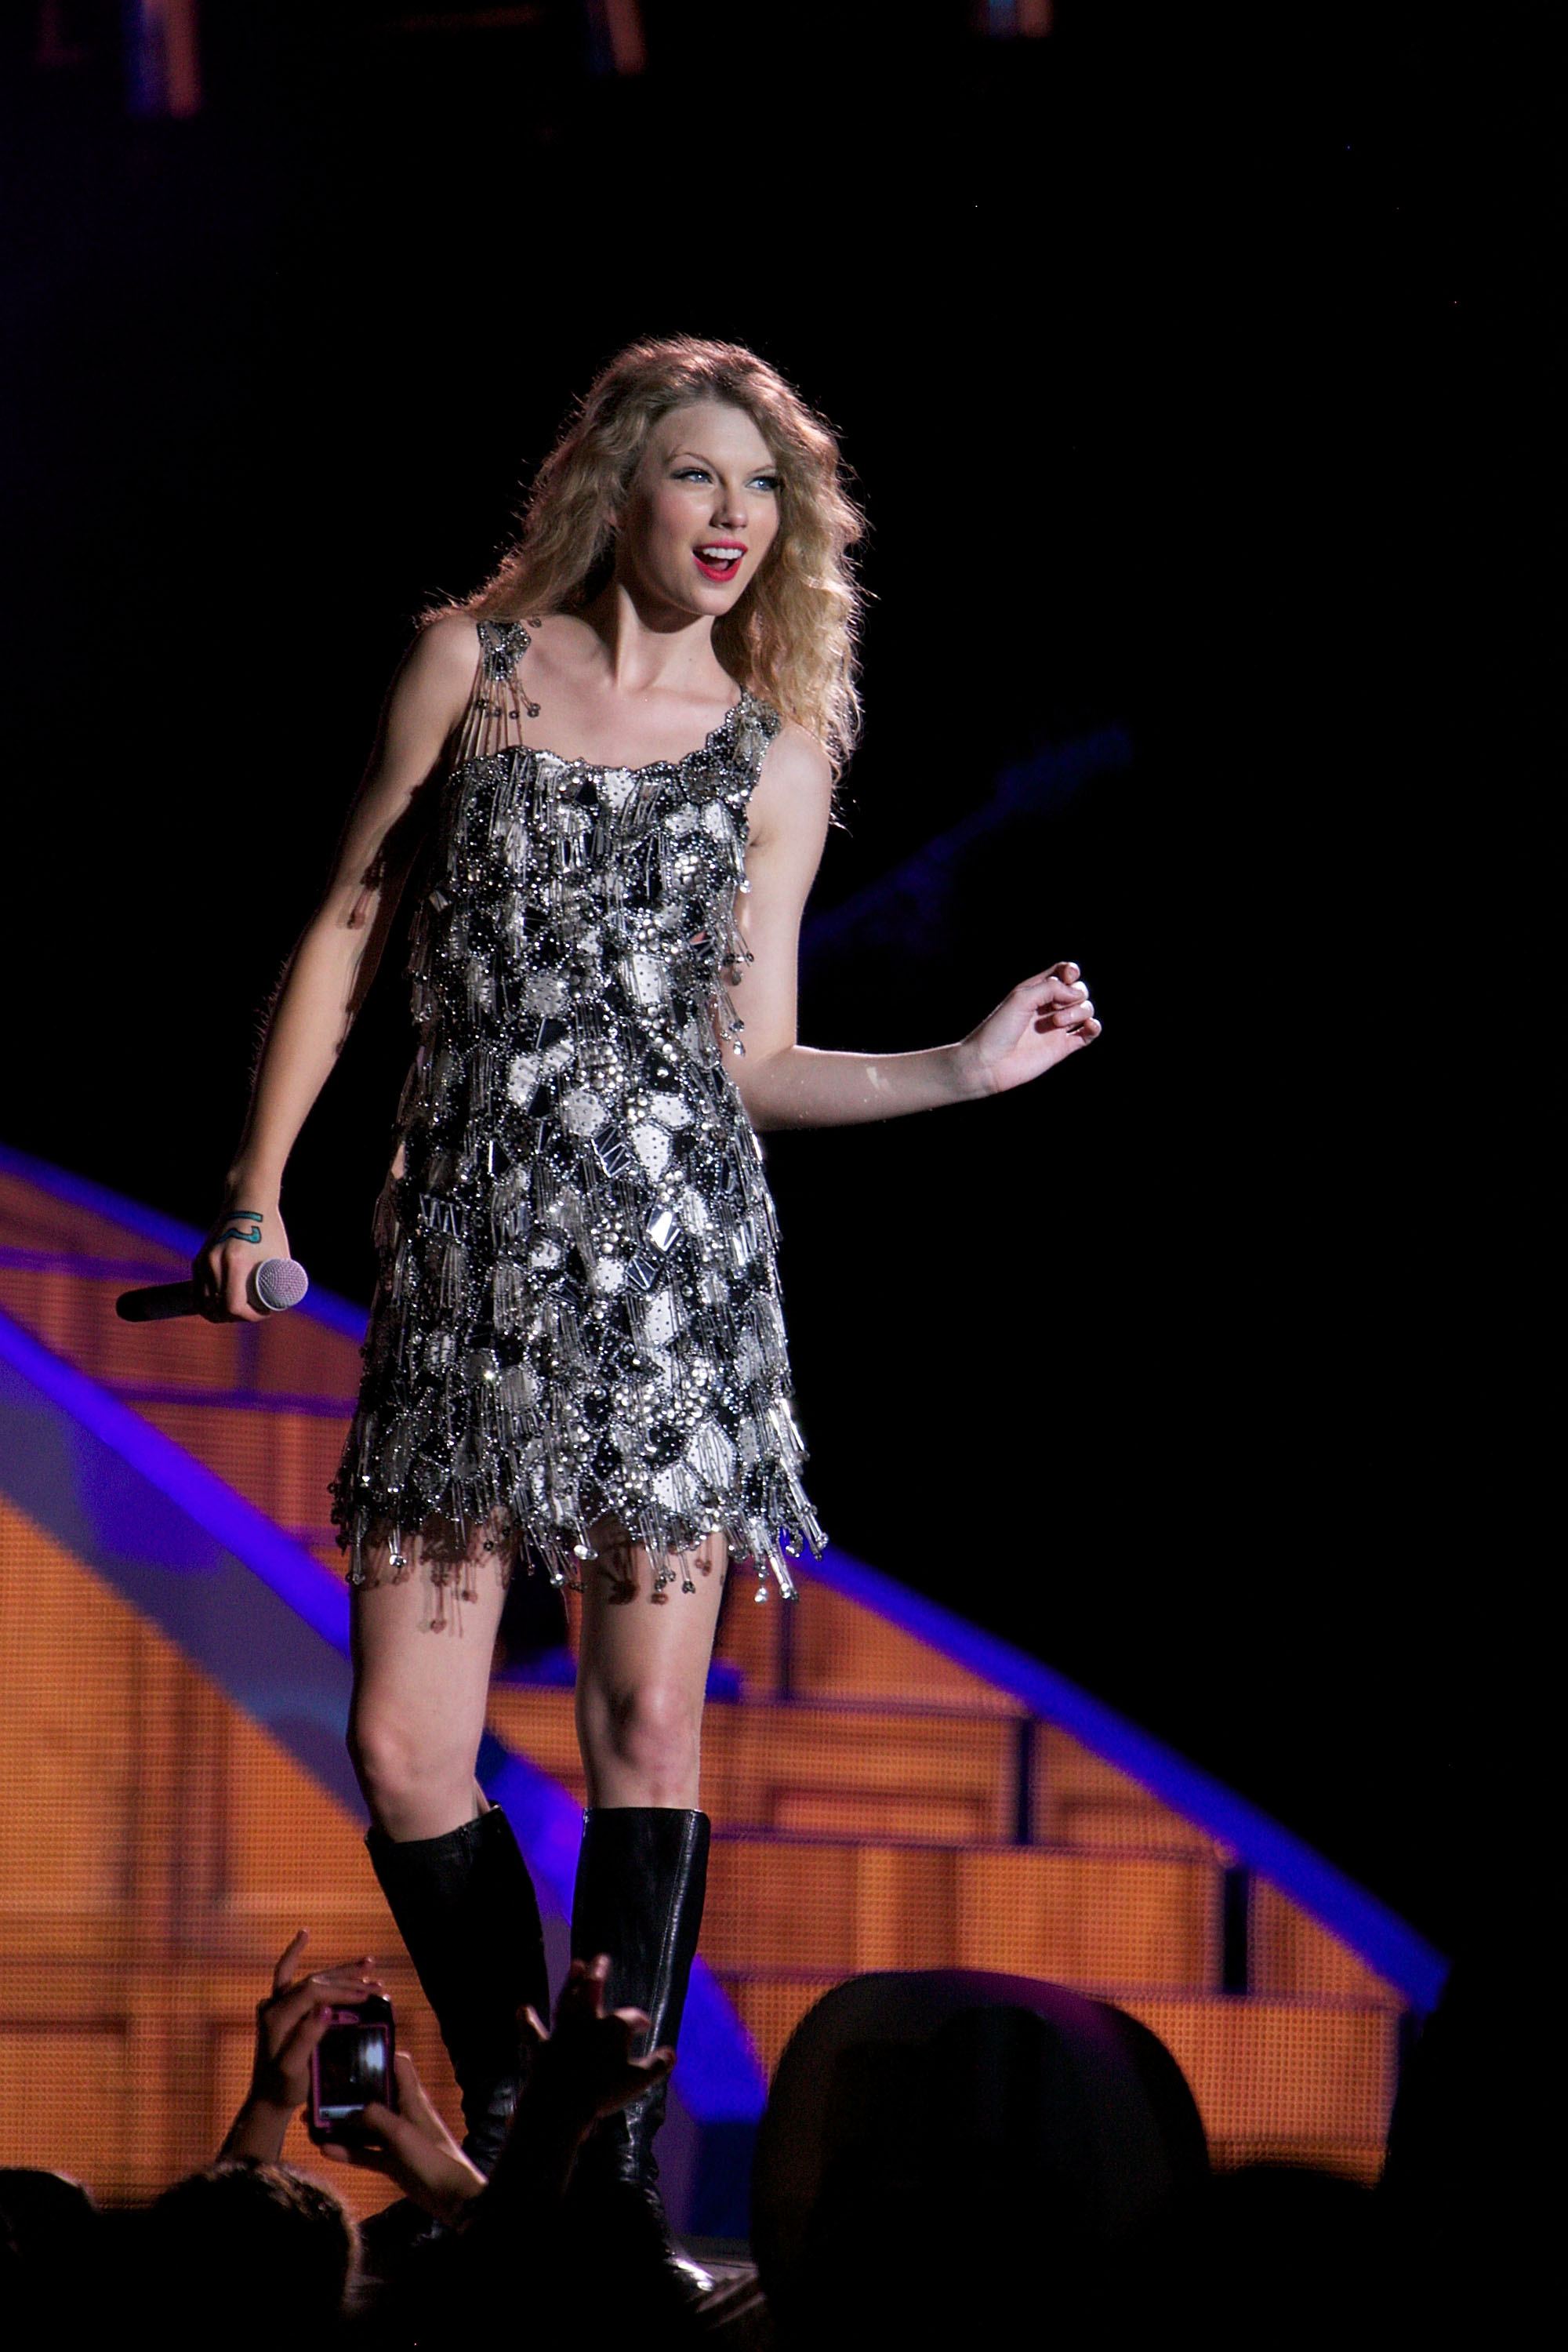 32632_Taylor_swift_performs_her_Fearless_Tour_at_Tiger_Stadium_028_122_491lo.jpg